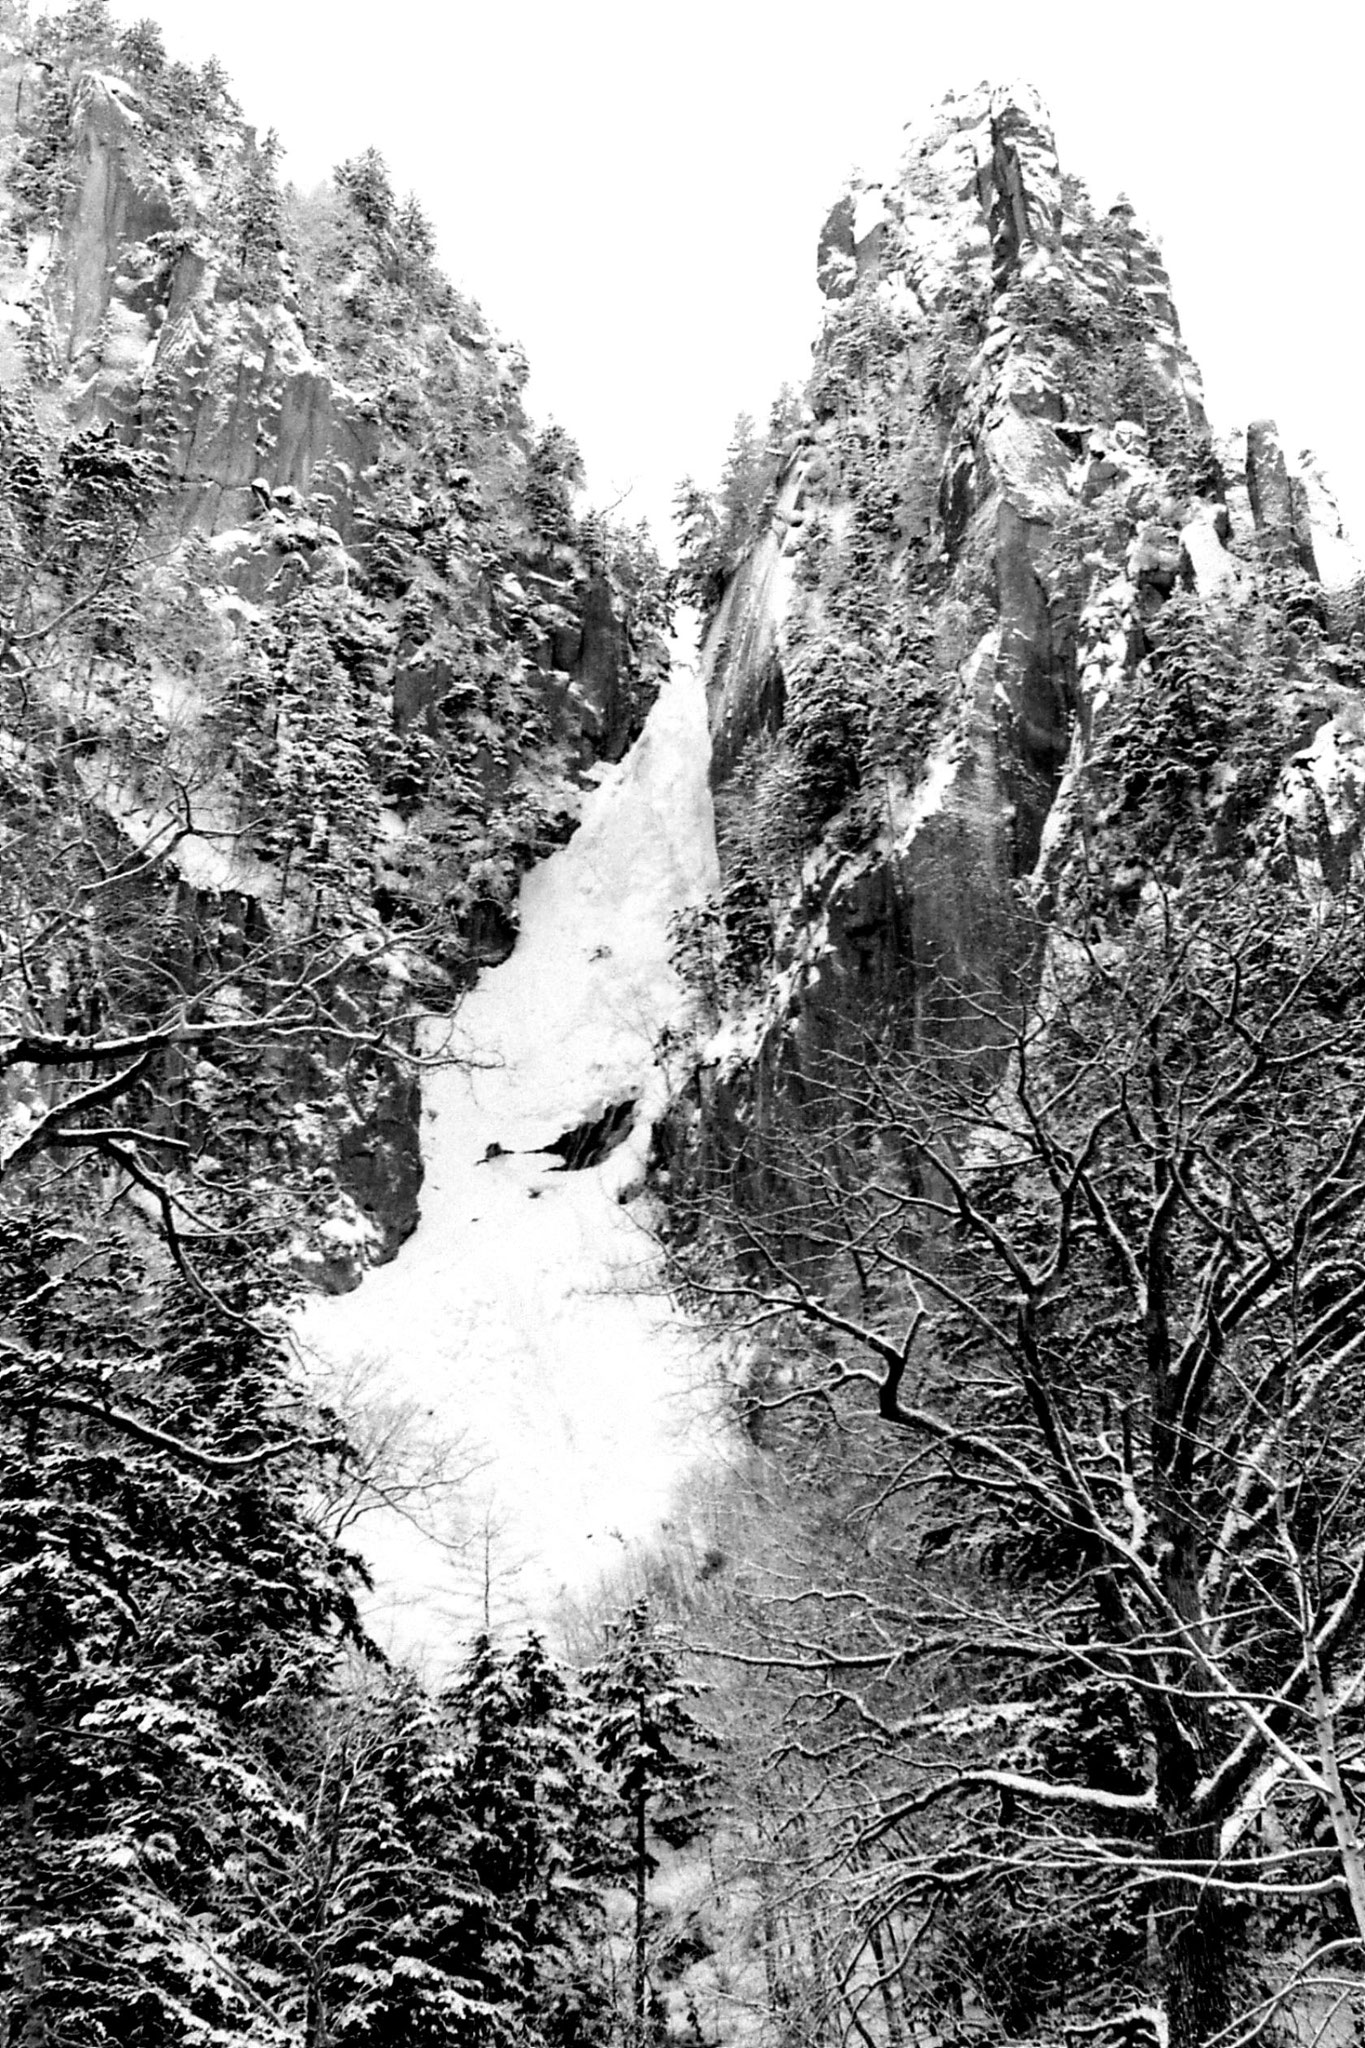 12/1/1989: 11: frozen waterfall